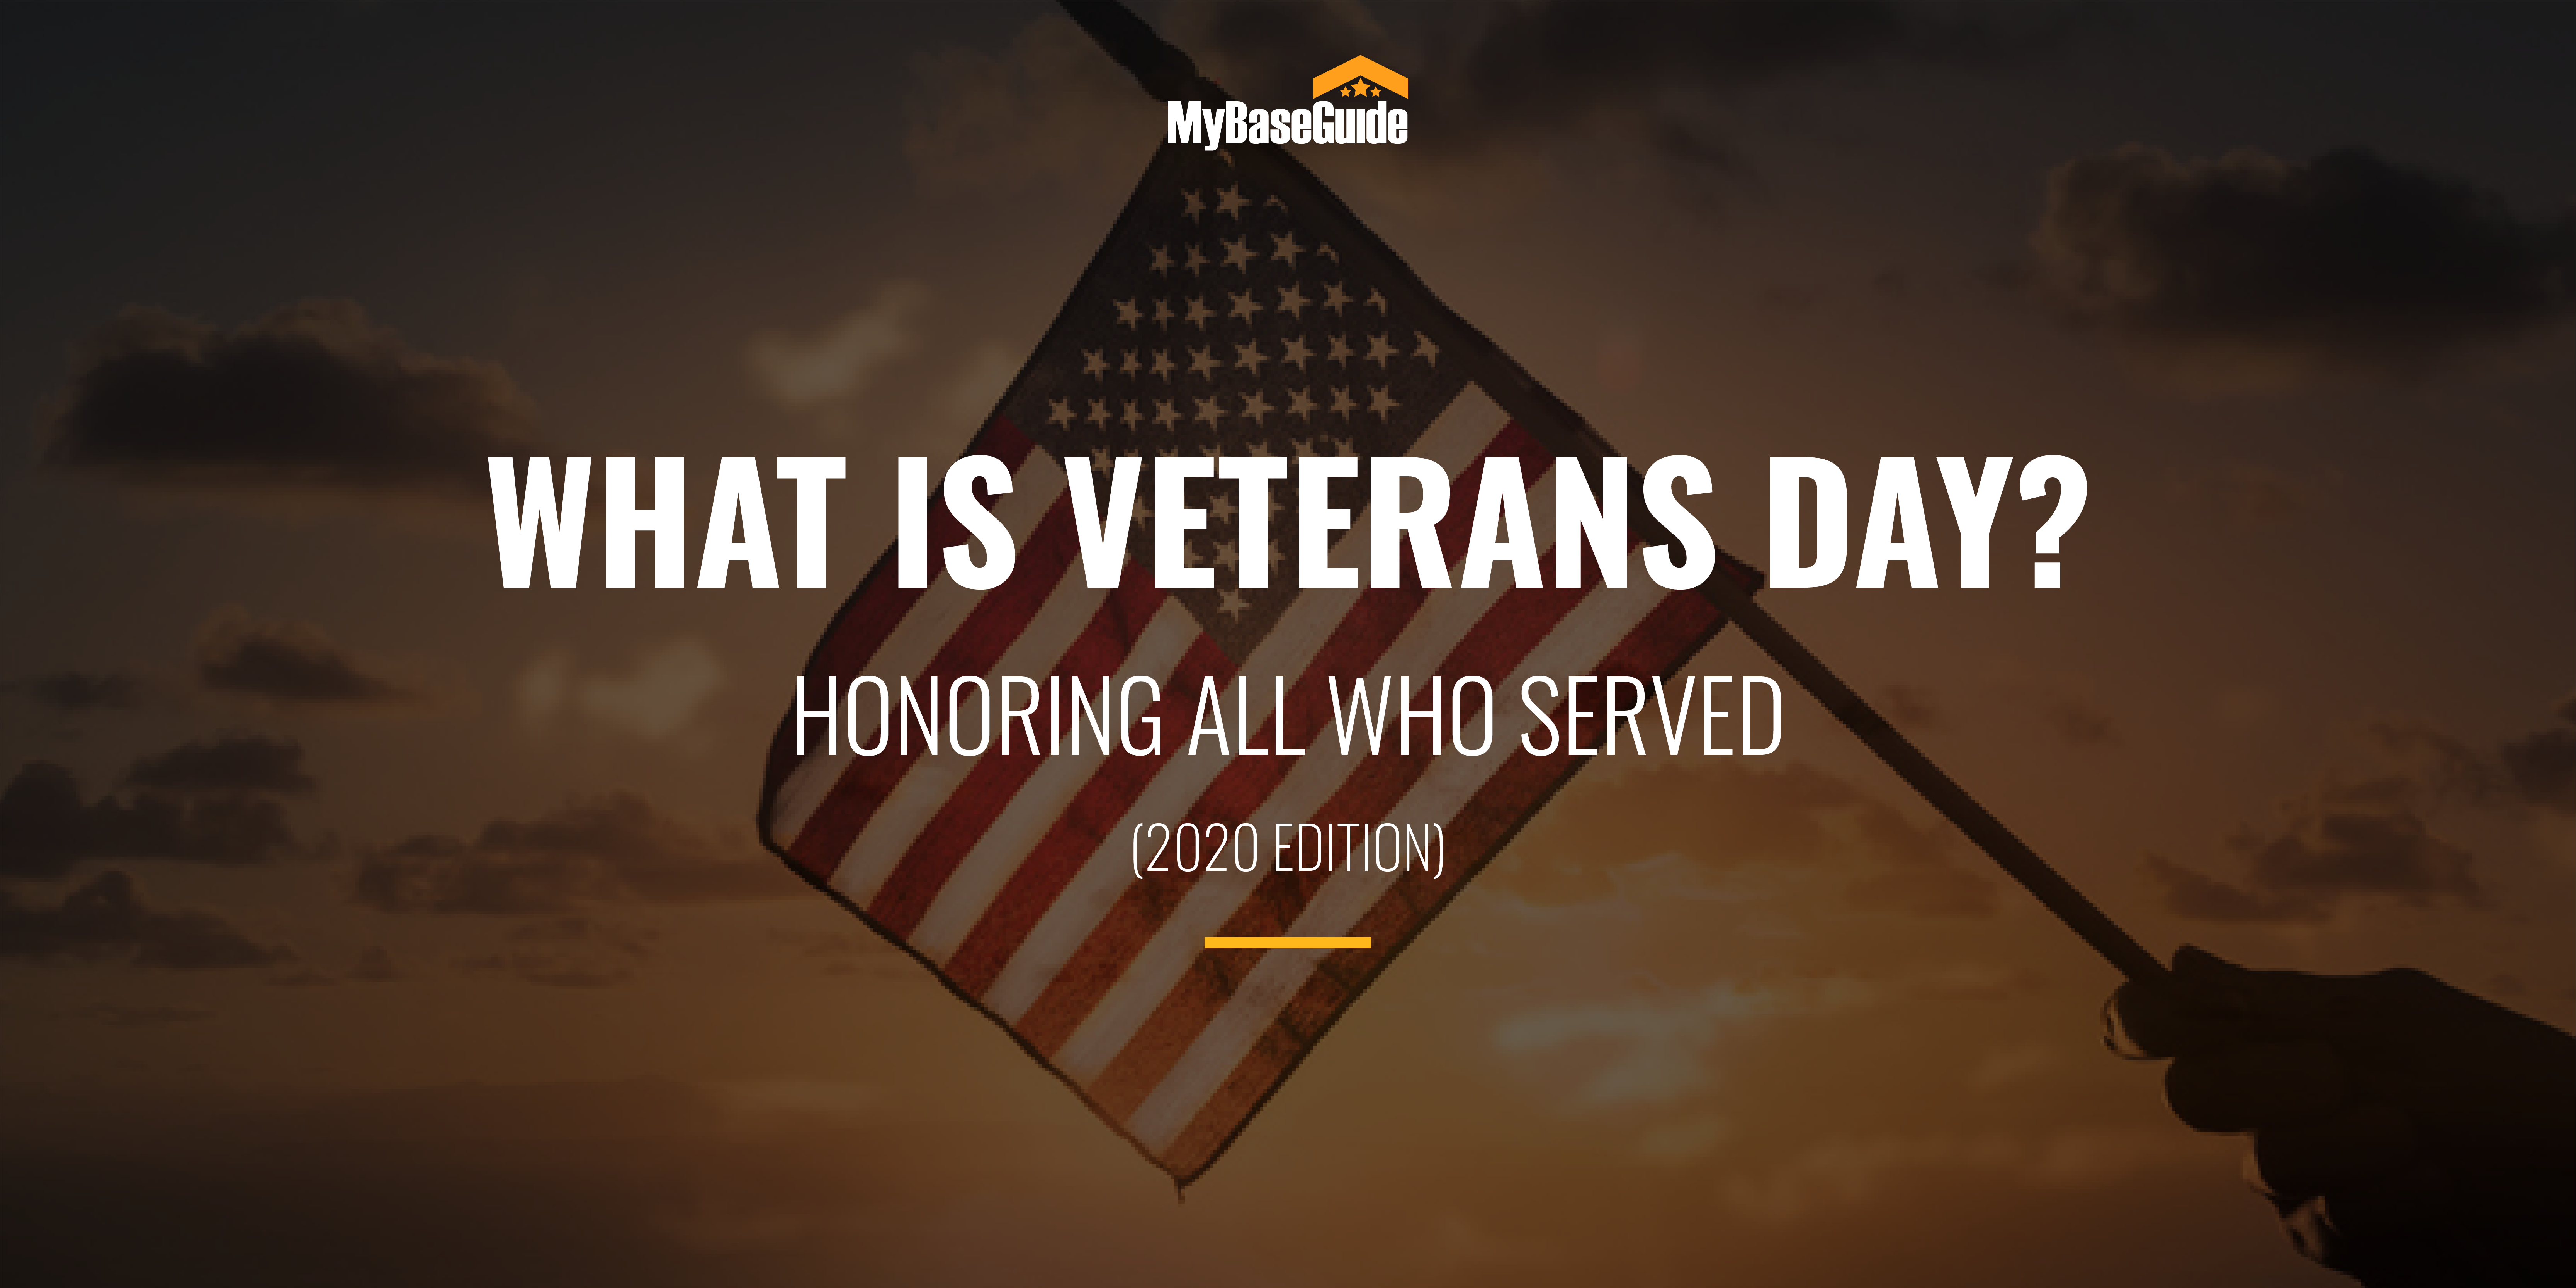 What Is Veterans Day? Honoring All Who Served